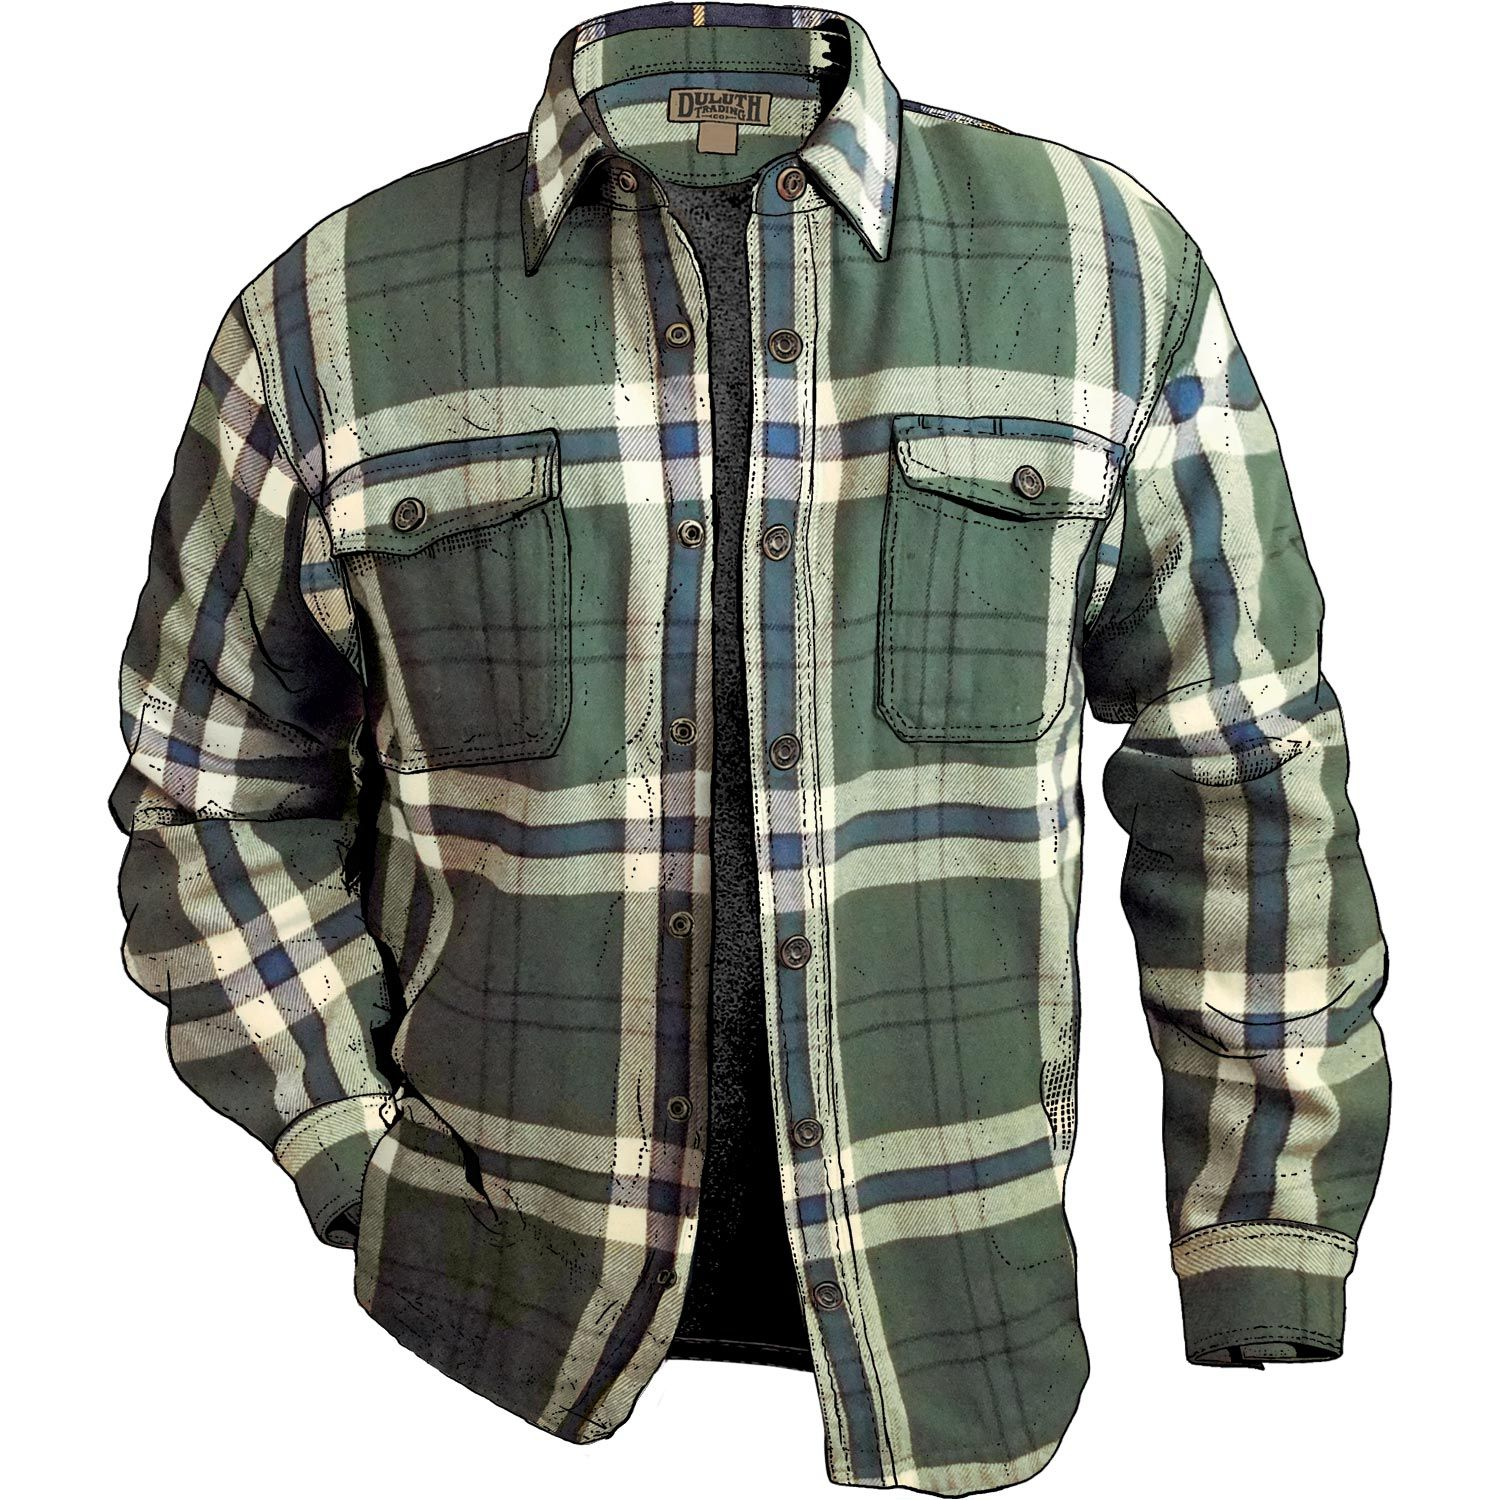 Flannel shirt season  Fleecelined Flannel Shirt Jac is built for real work a thick warm